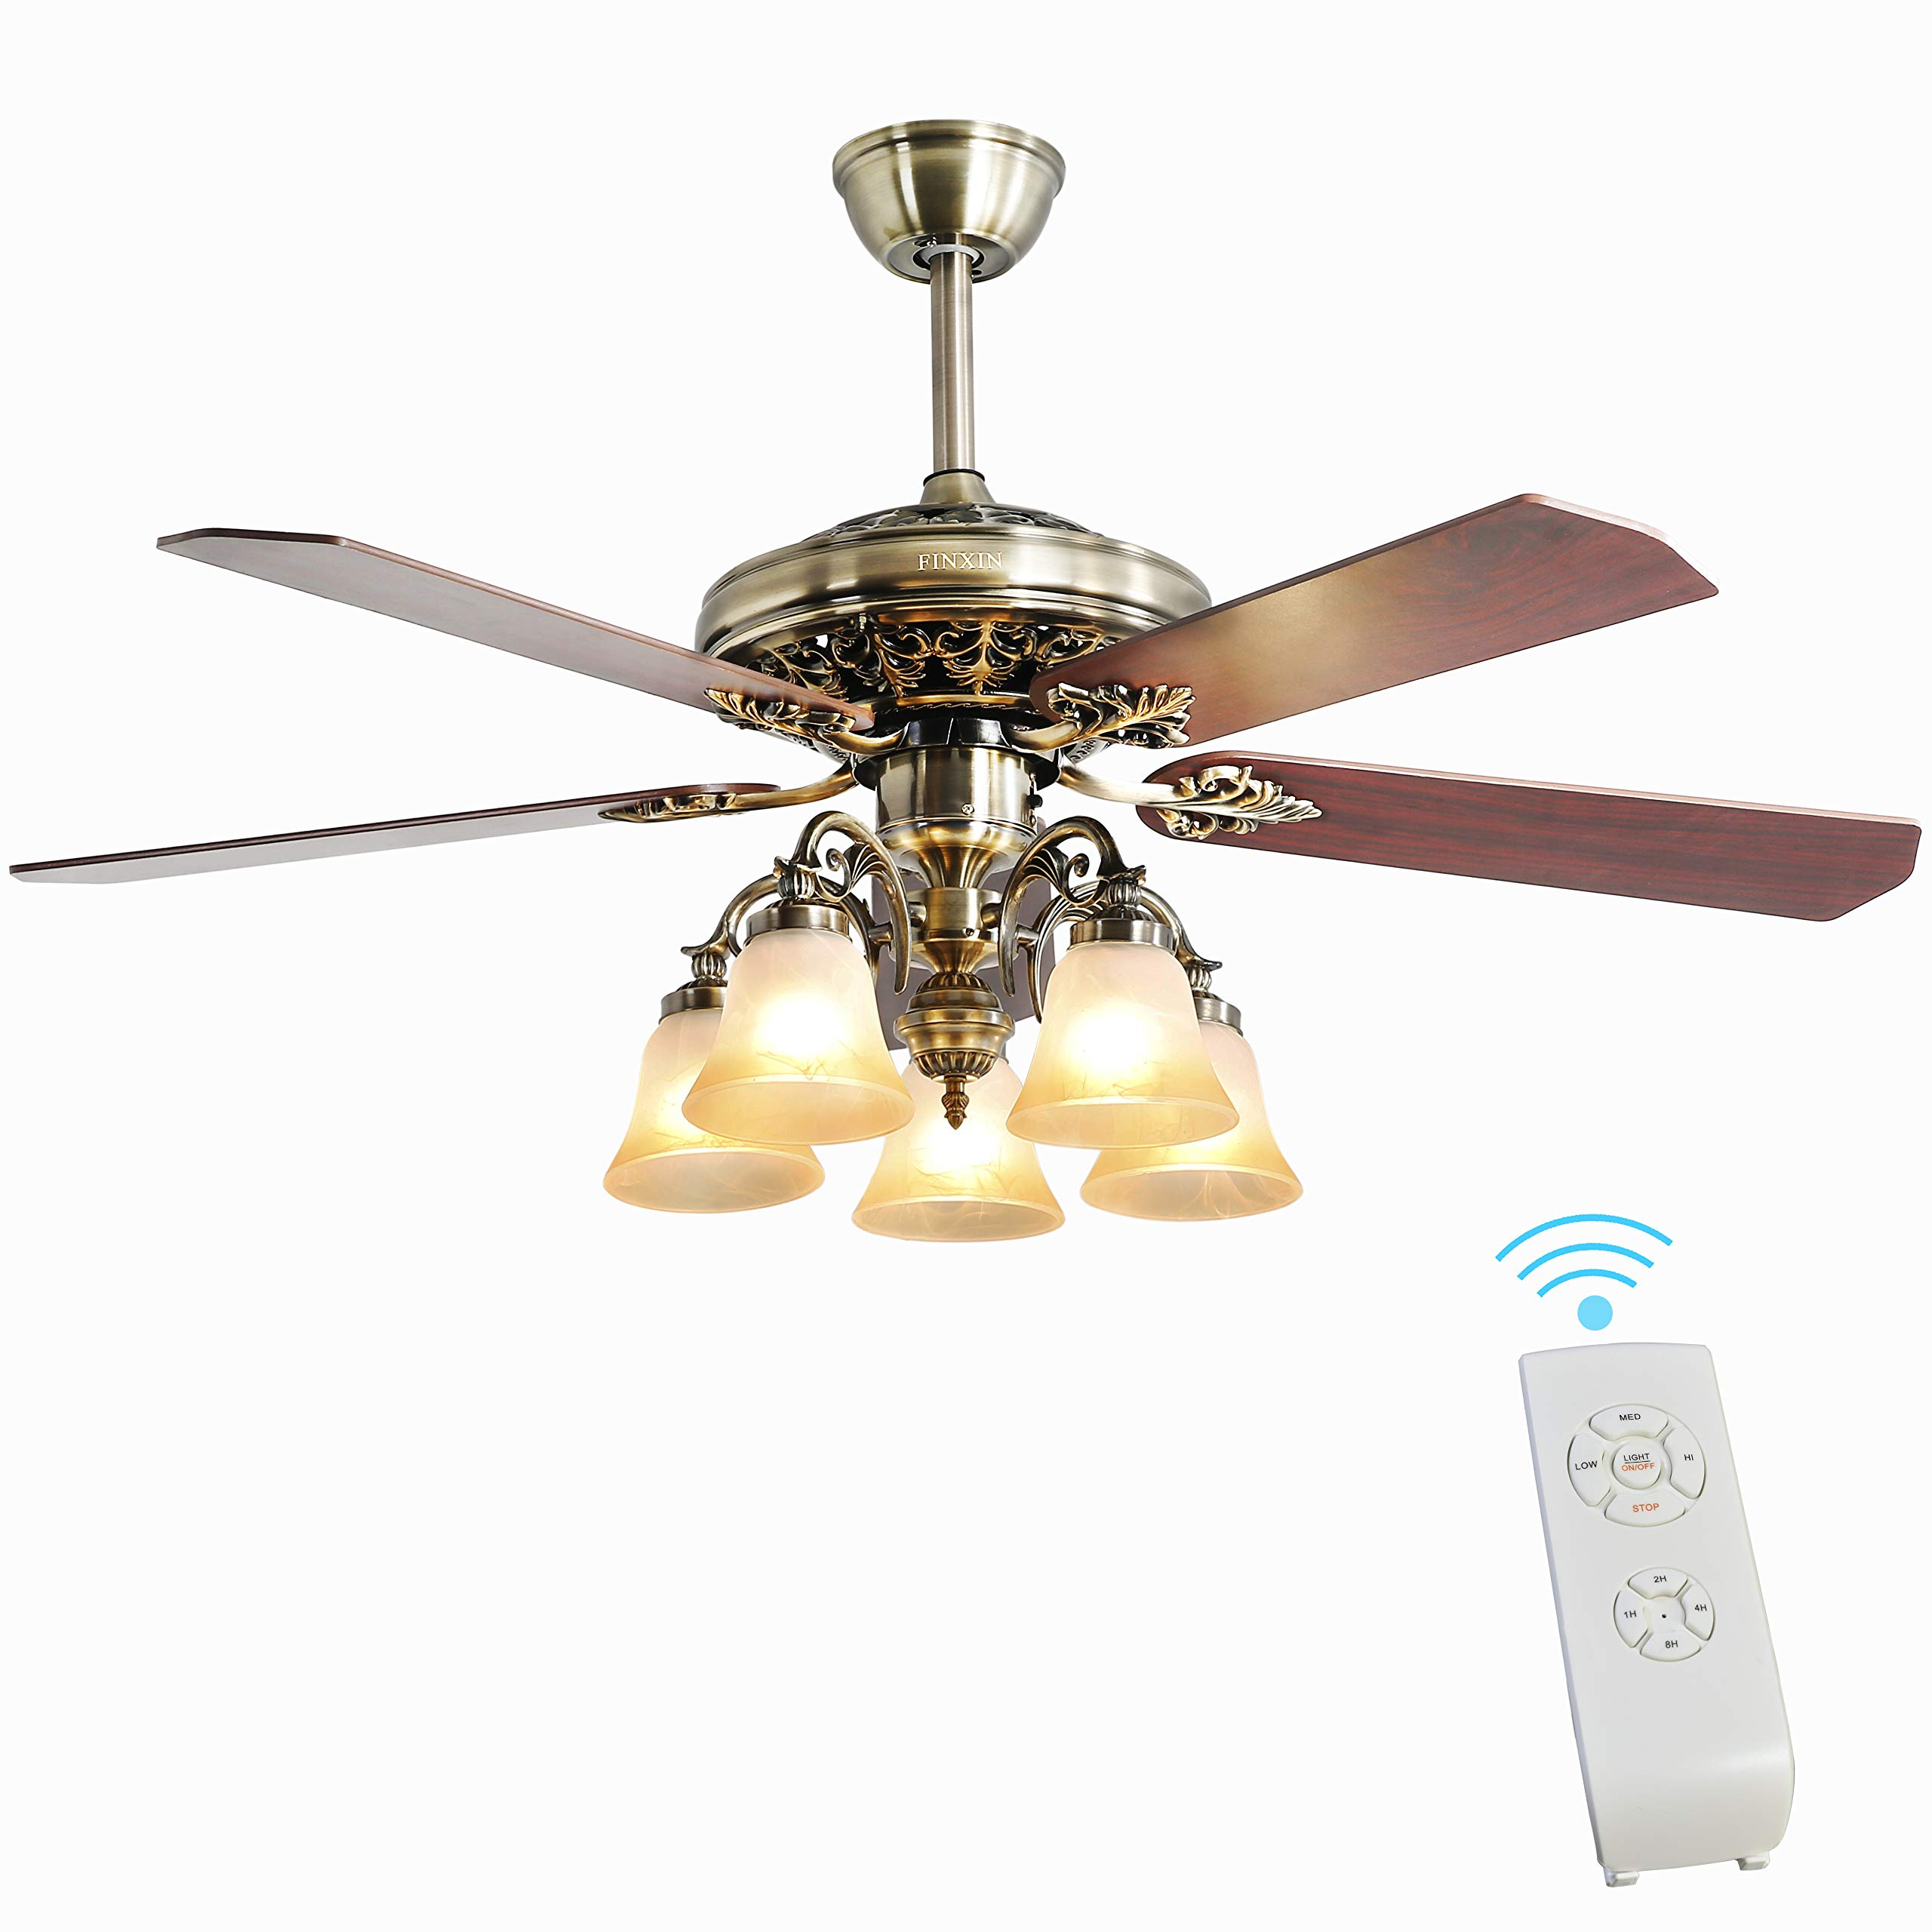 Indoor Ceiling Fan Light Fixtures - FINXIN New Bronze Remote LED 52 Ceiling Fans For Bedroom,Living Room,Dining Room Including Motor,5-Light,5-Blades,Remote Switch (New Bronze)